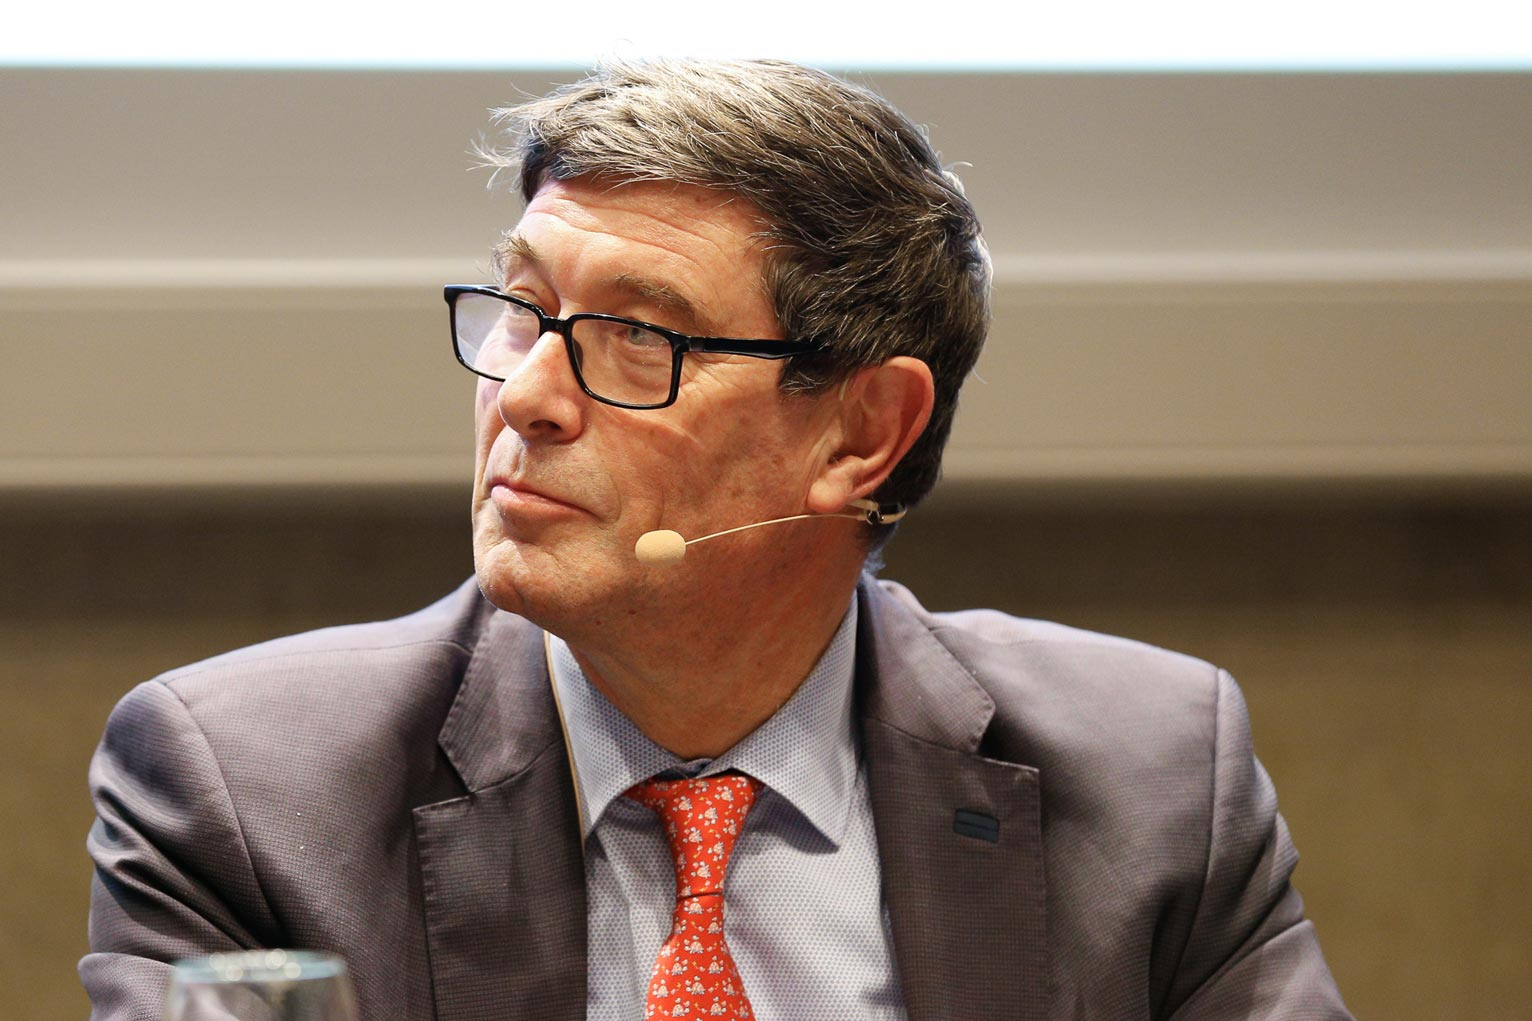 Mauro Dell'Ambrogio, former State Secretary for Education, Research and Innovation